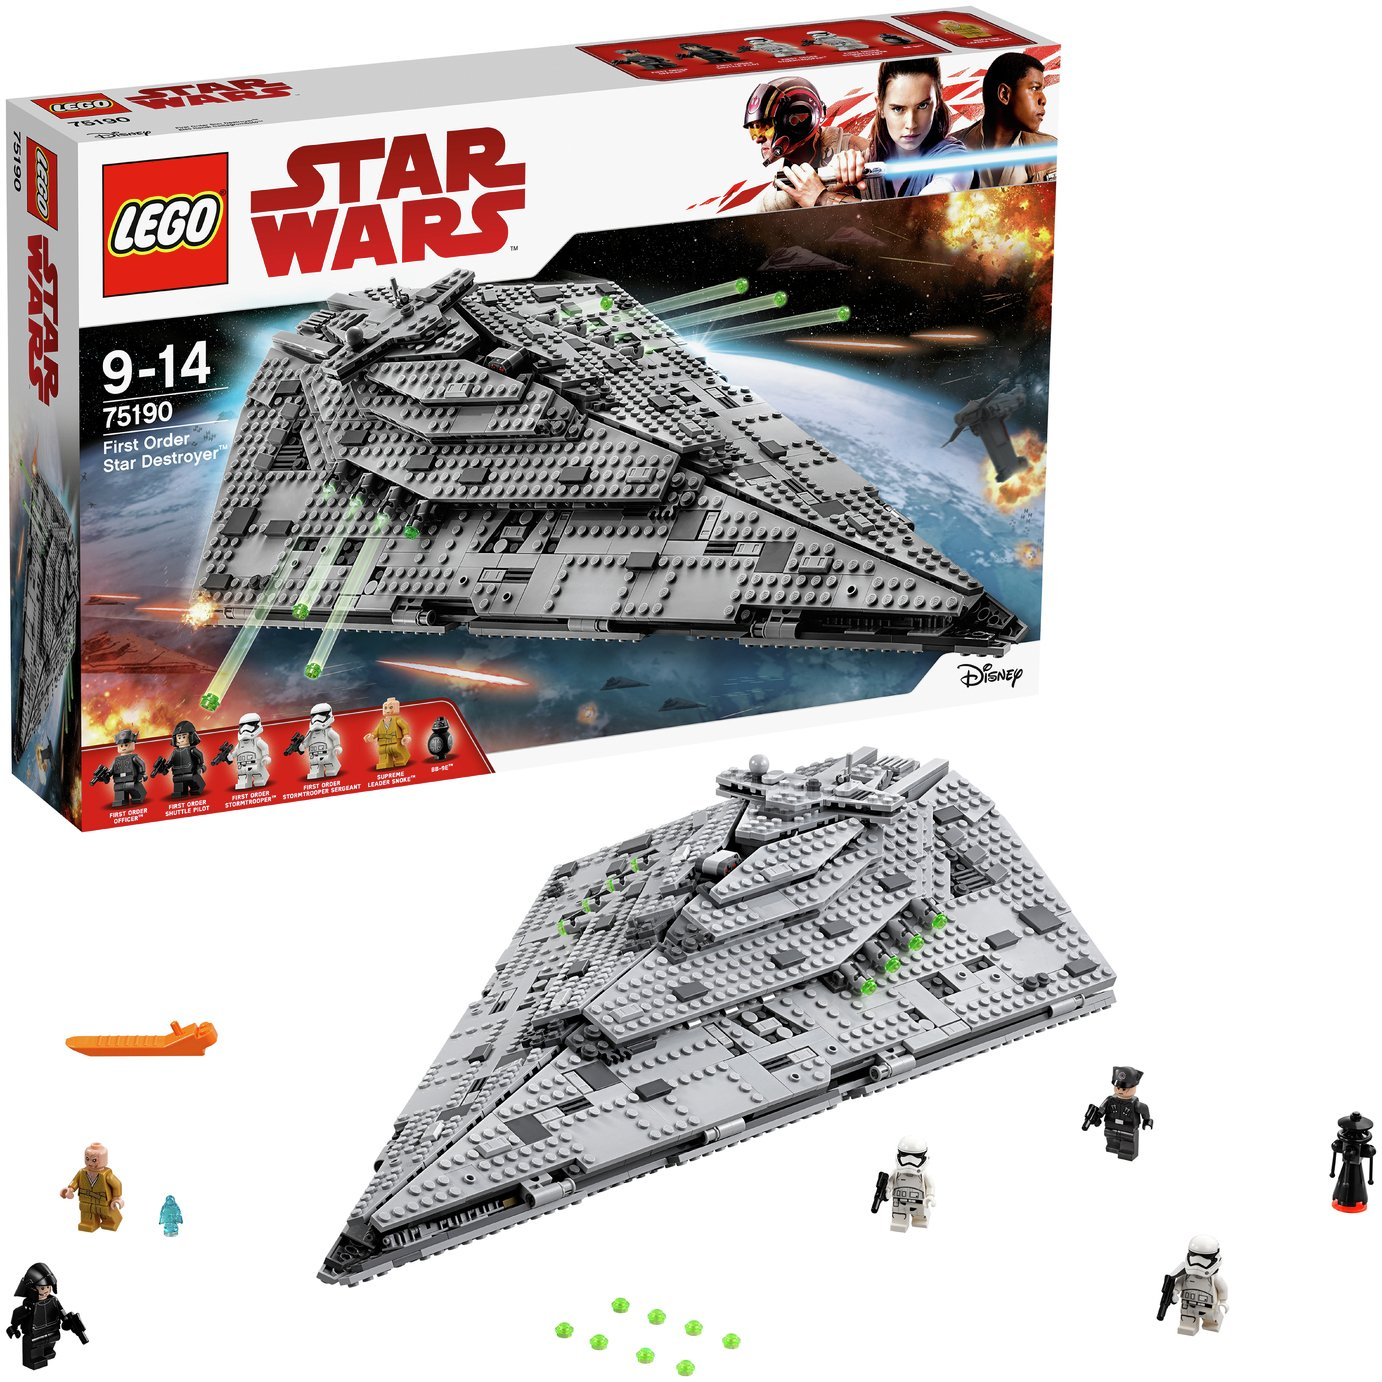 Image of LEGO Star Wars First Order Star Destroyer - 75190